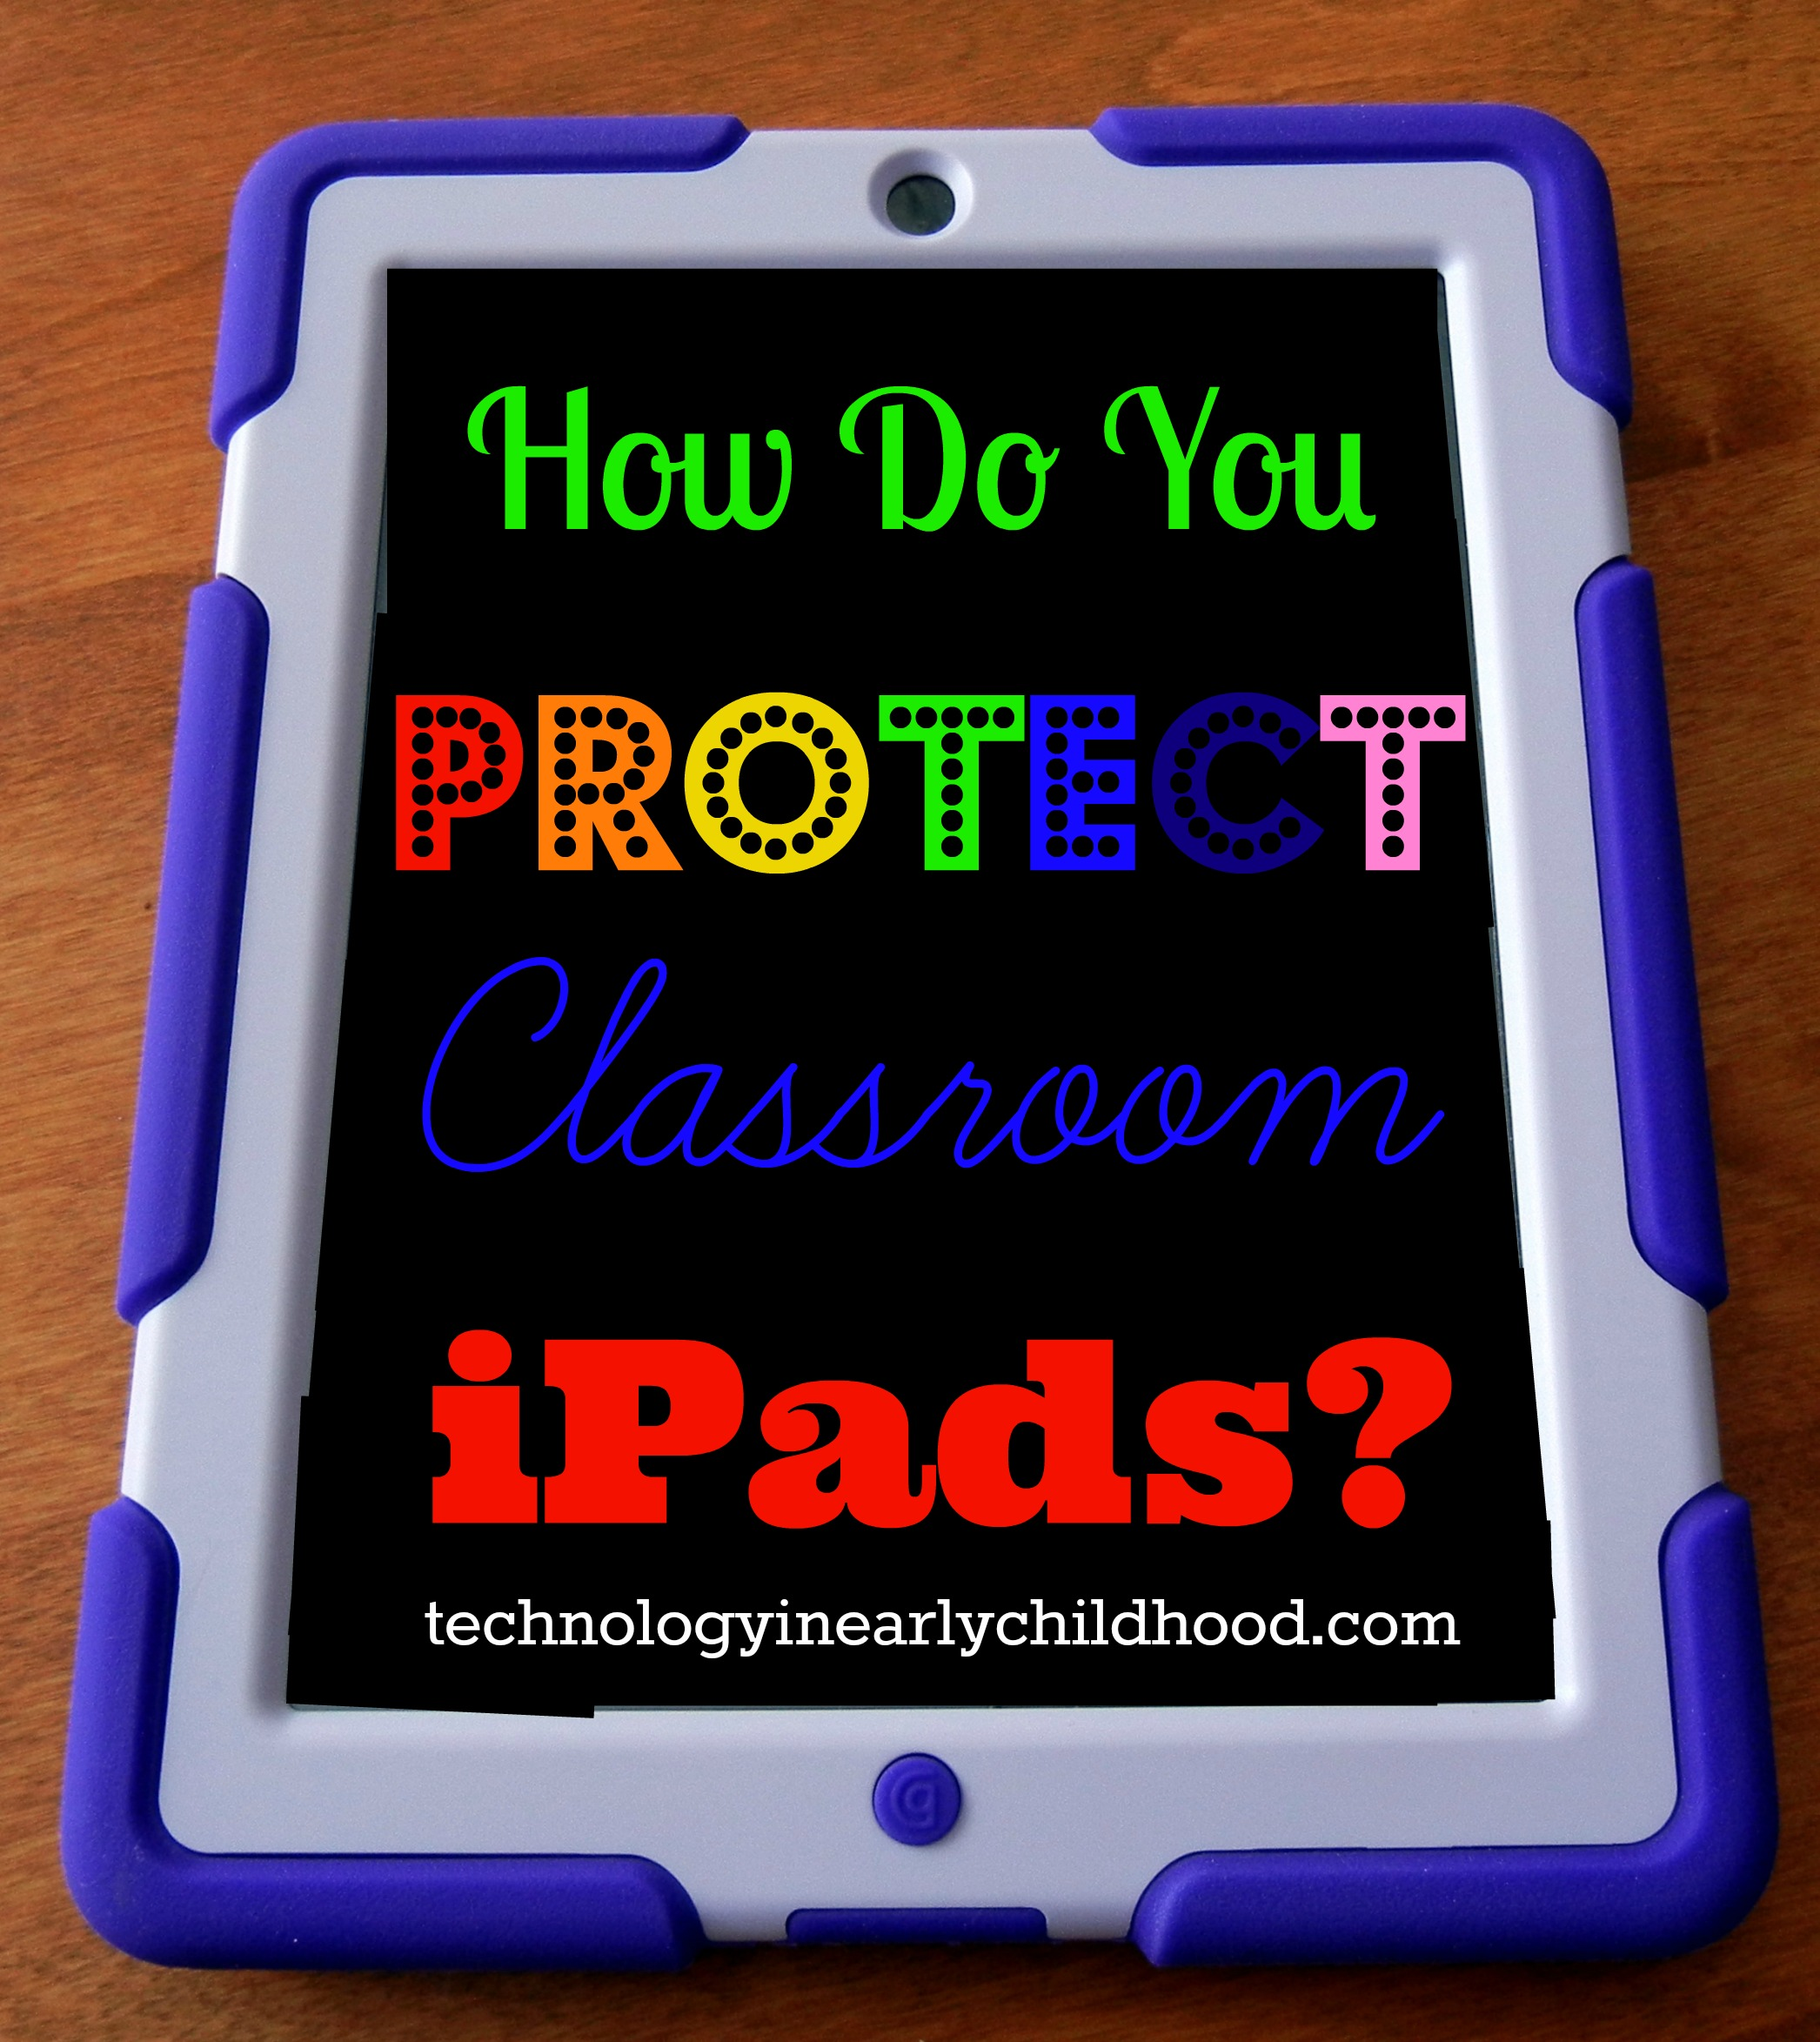 How do you protect classroom iPads